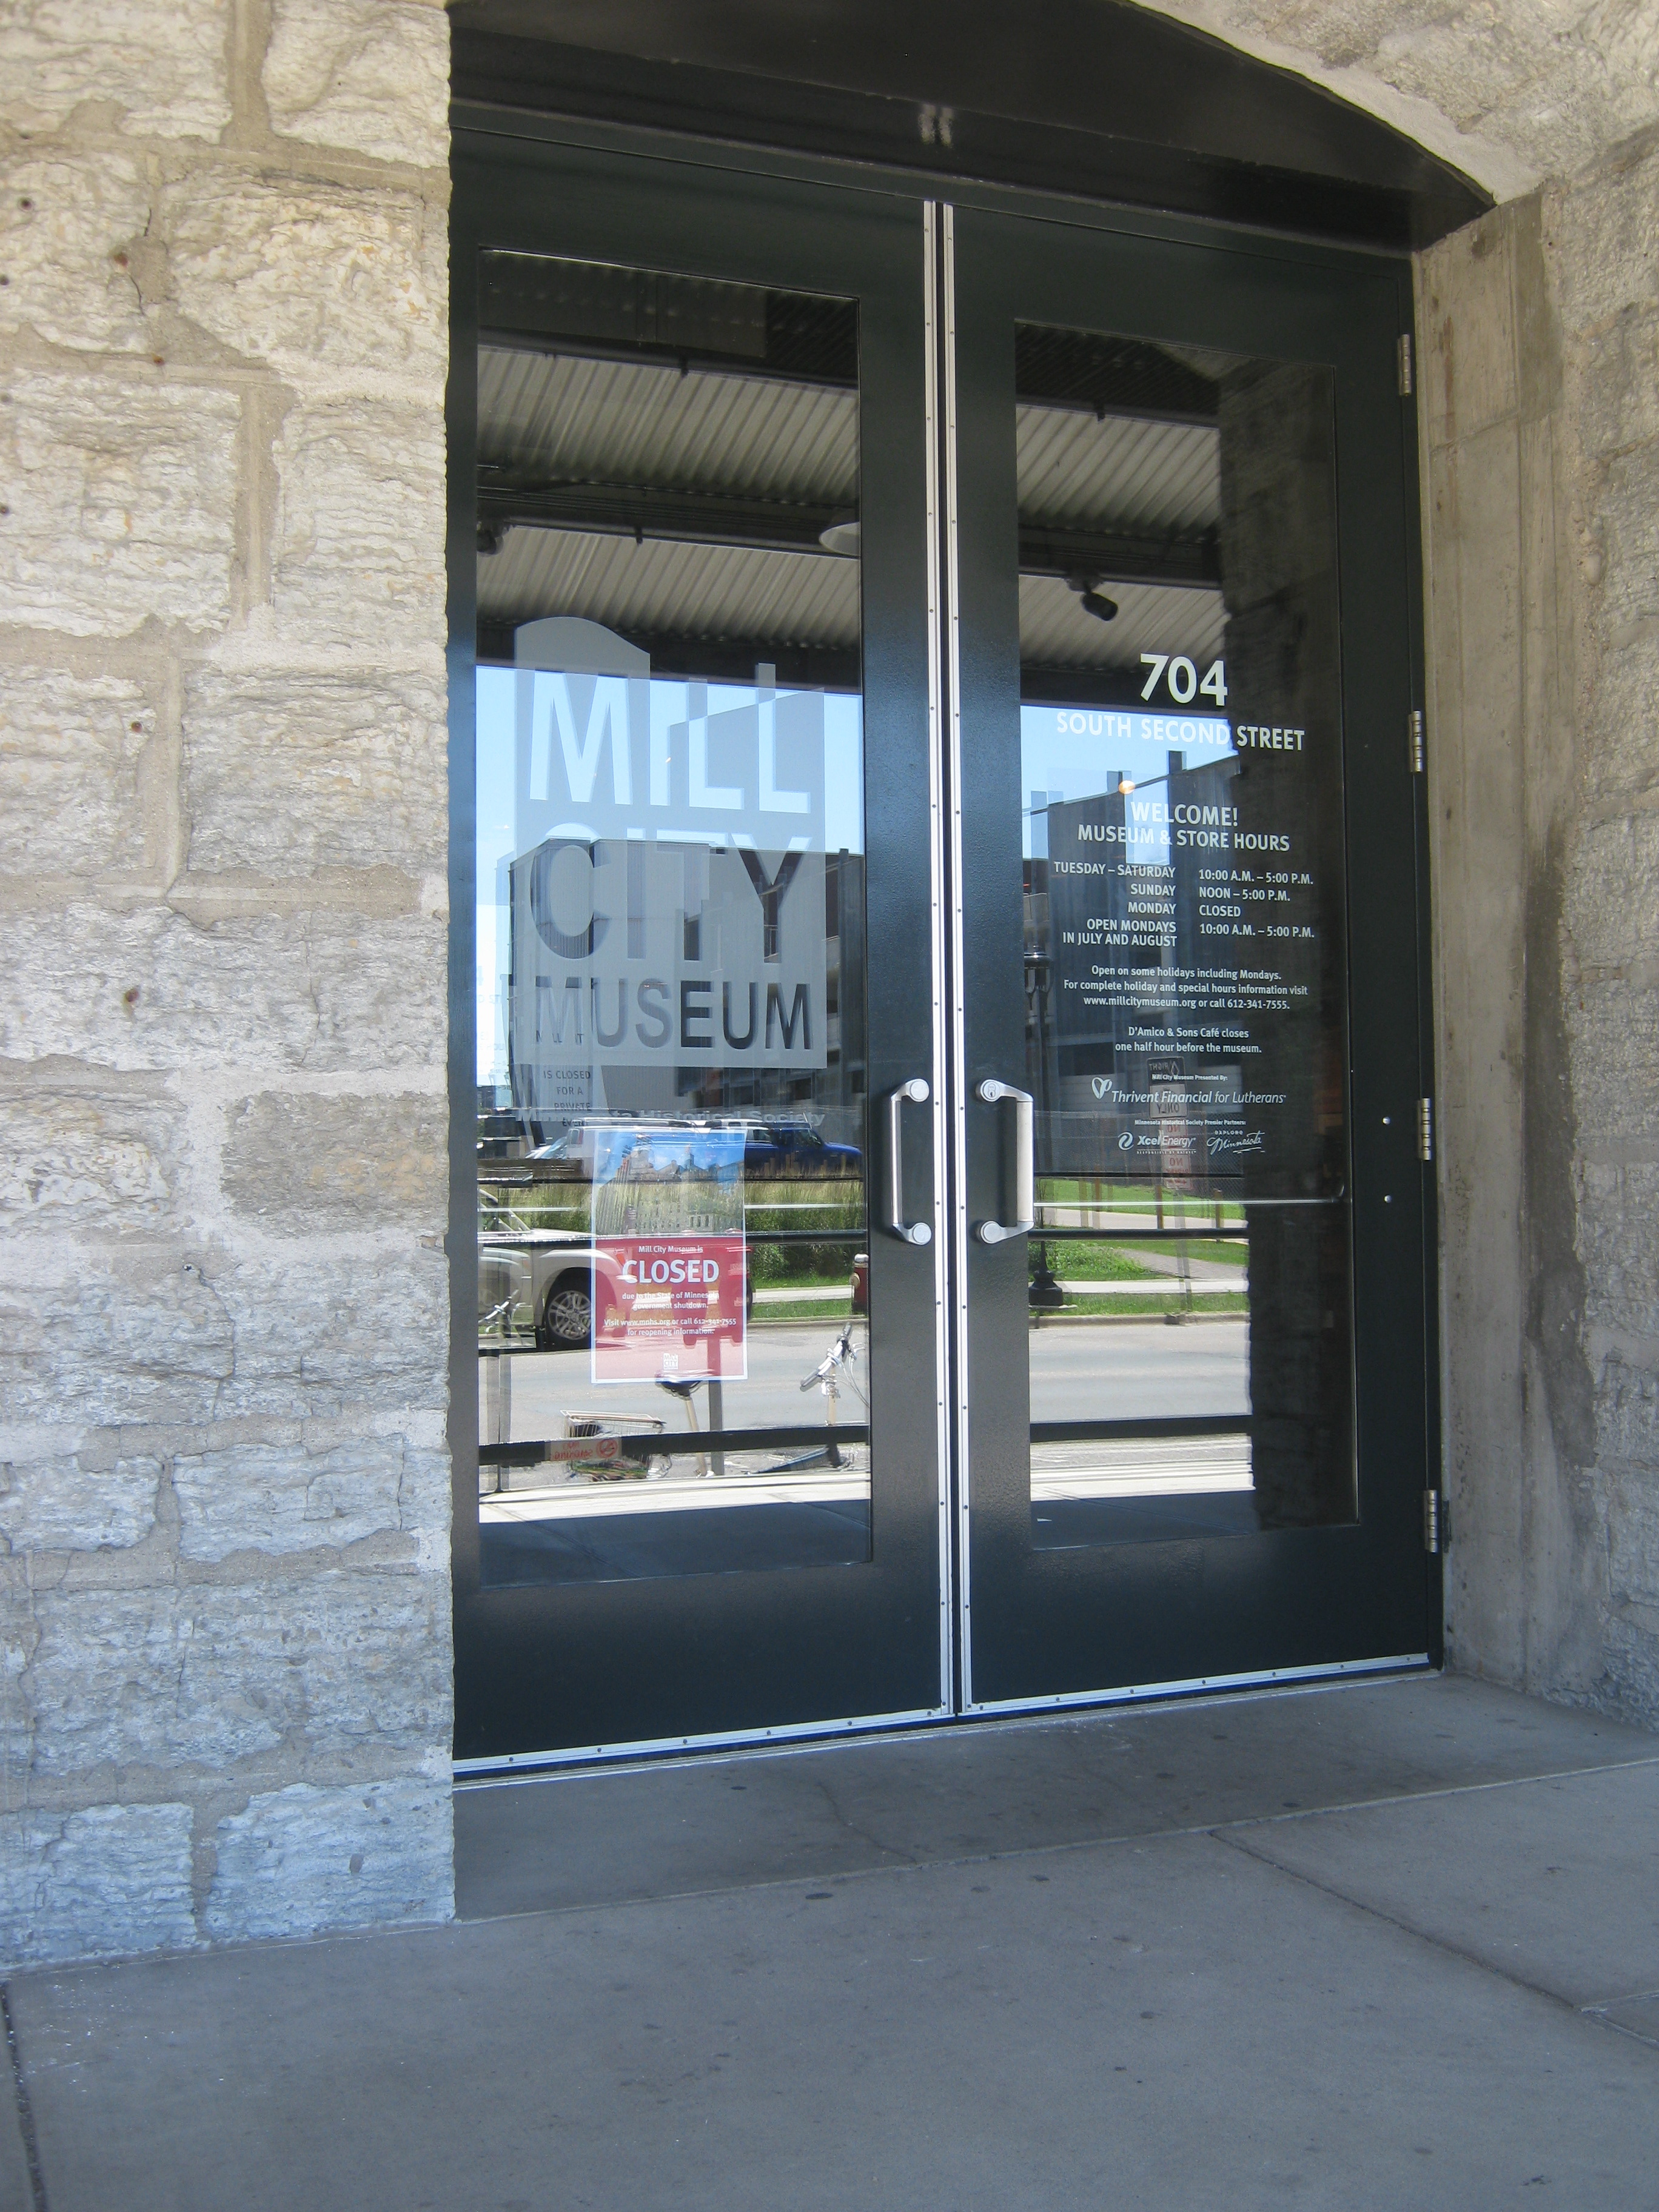 FileFront door of the Mill City Museum during the 2011 Minnesota government shutdown. & File:Front door of the Mill City Museum during the 2011 Minnesota ...